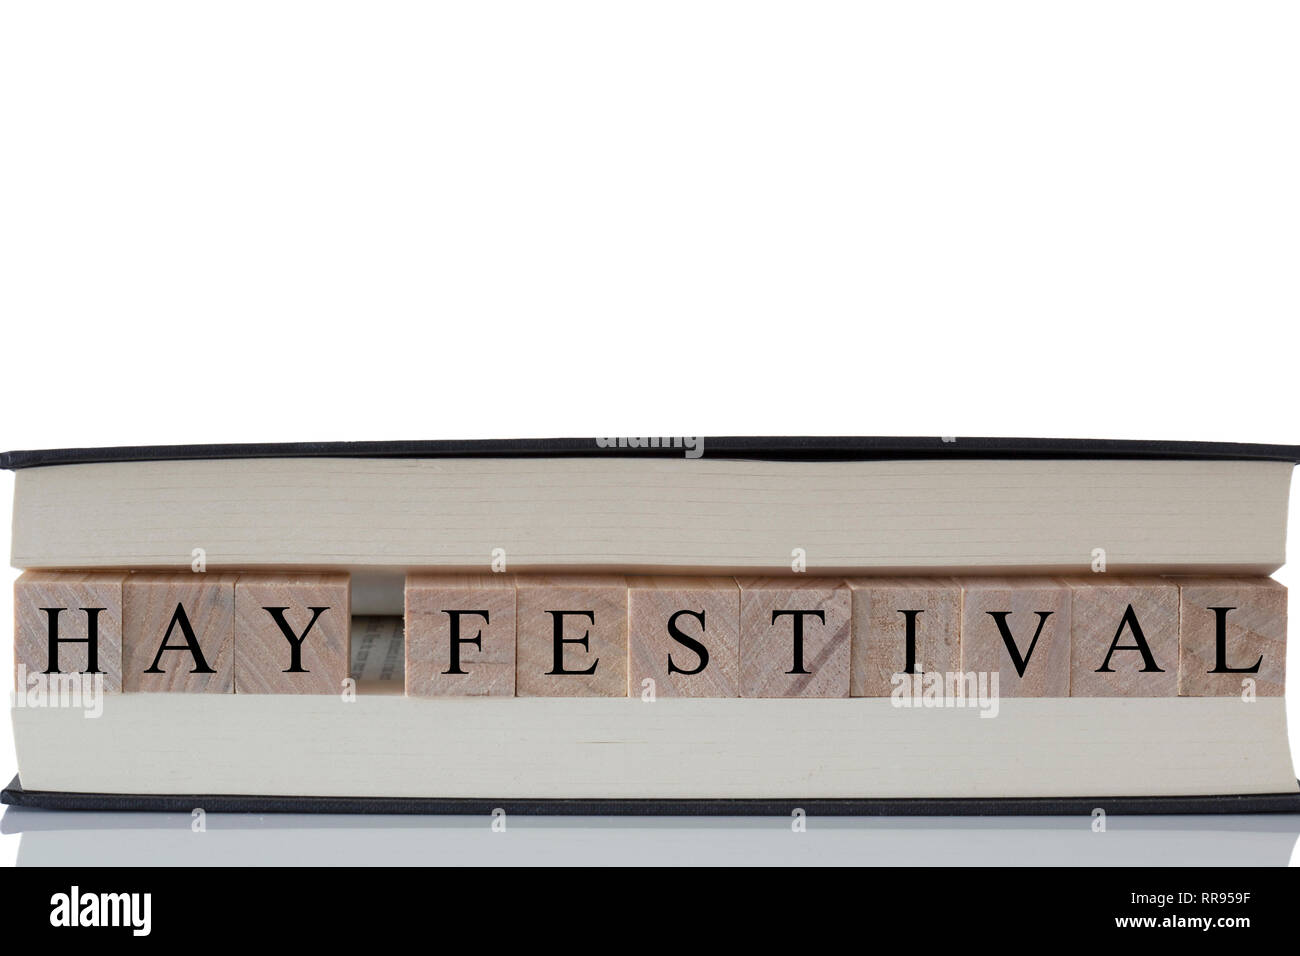 Hay Festival written on wooden blocks inside a book isolated on a white background with reflection - Stock Image